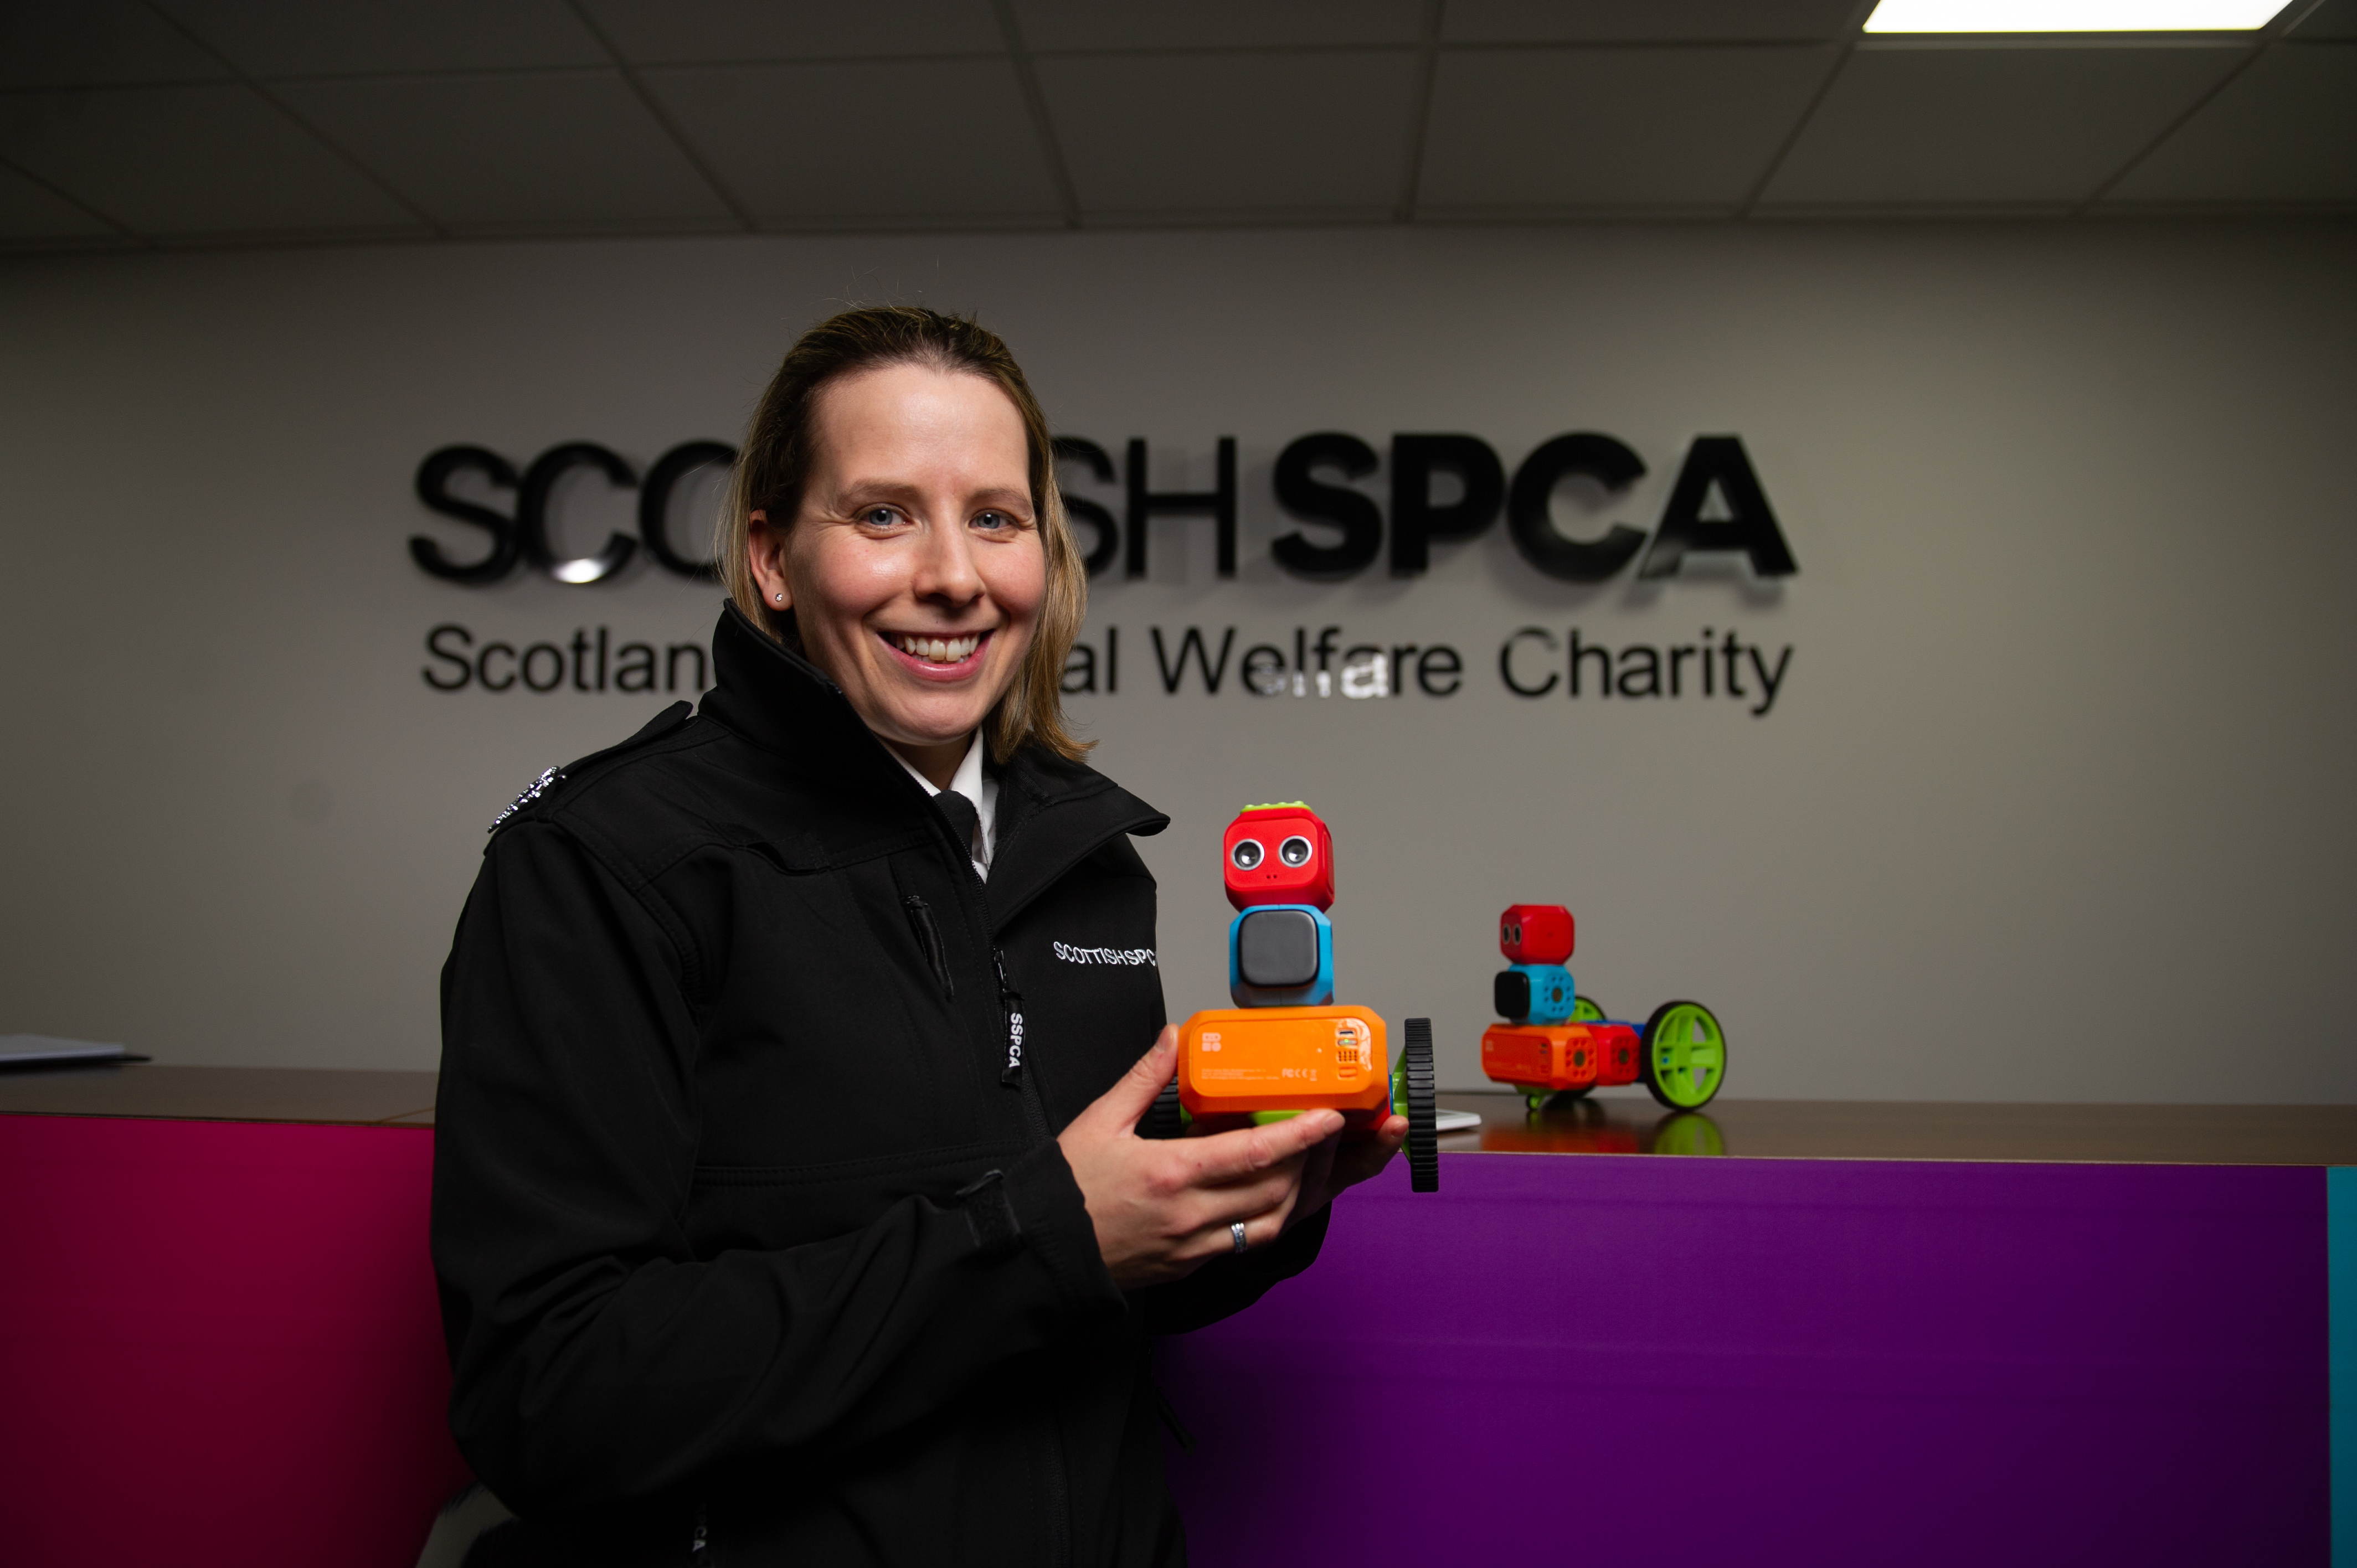 The SSPCA is using robots to teach children how to look after animals.